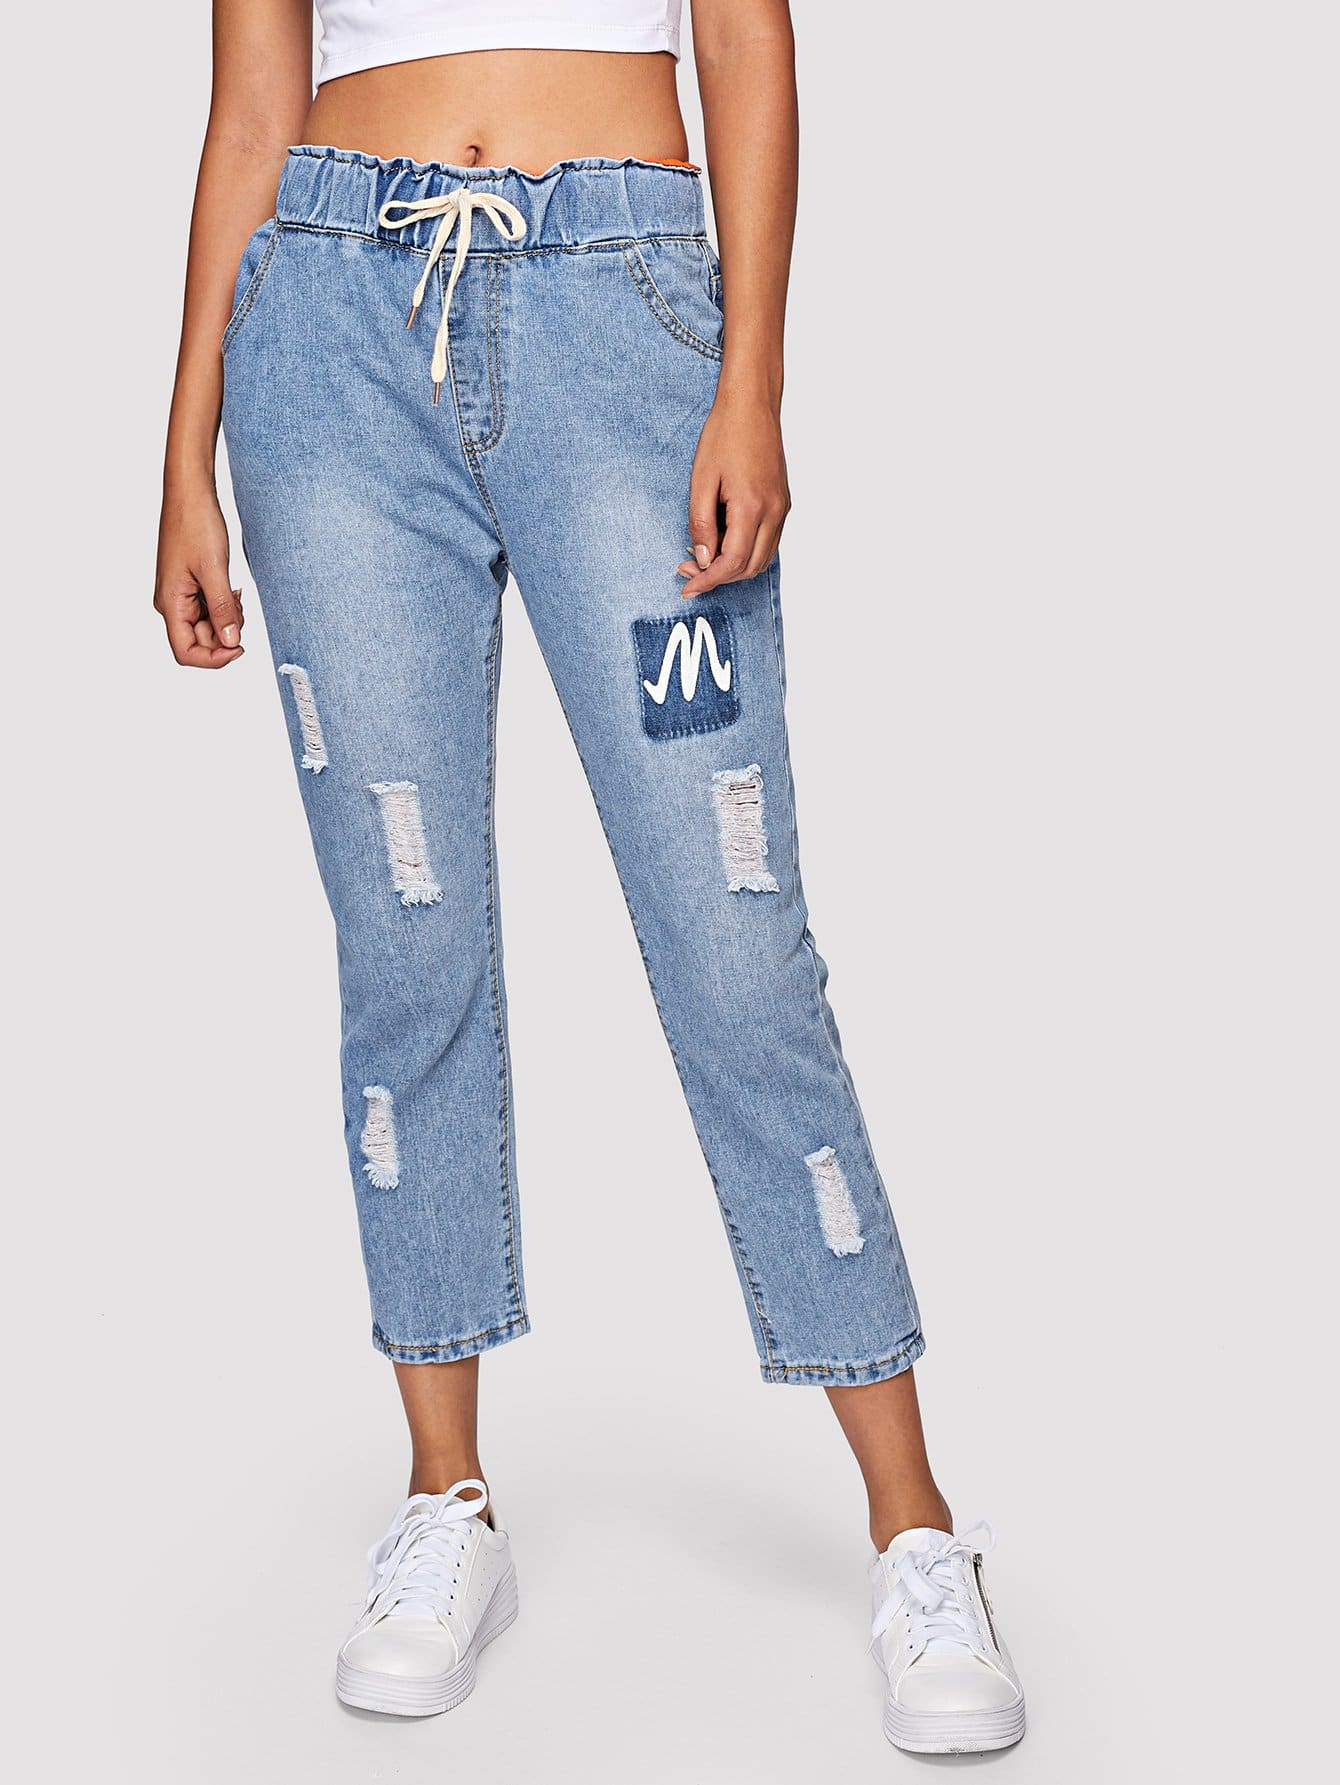 You Heard Right: Bell-Bottom Jeans Are Officially Back Who What Wear 69